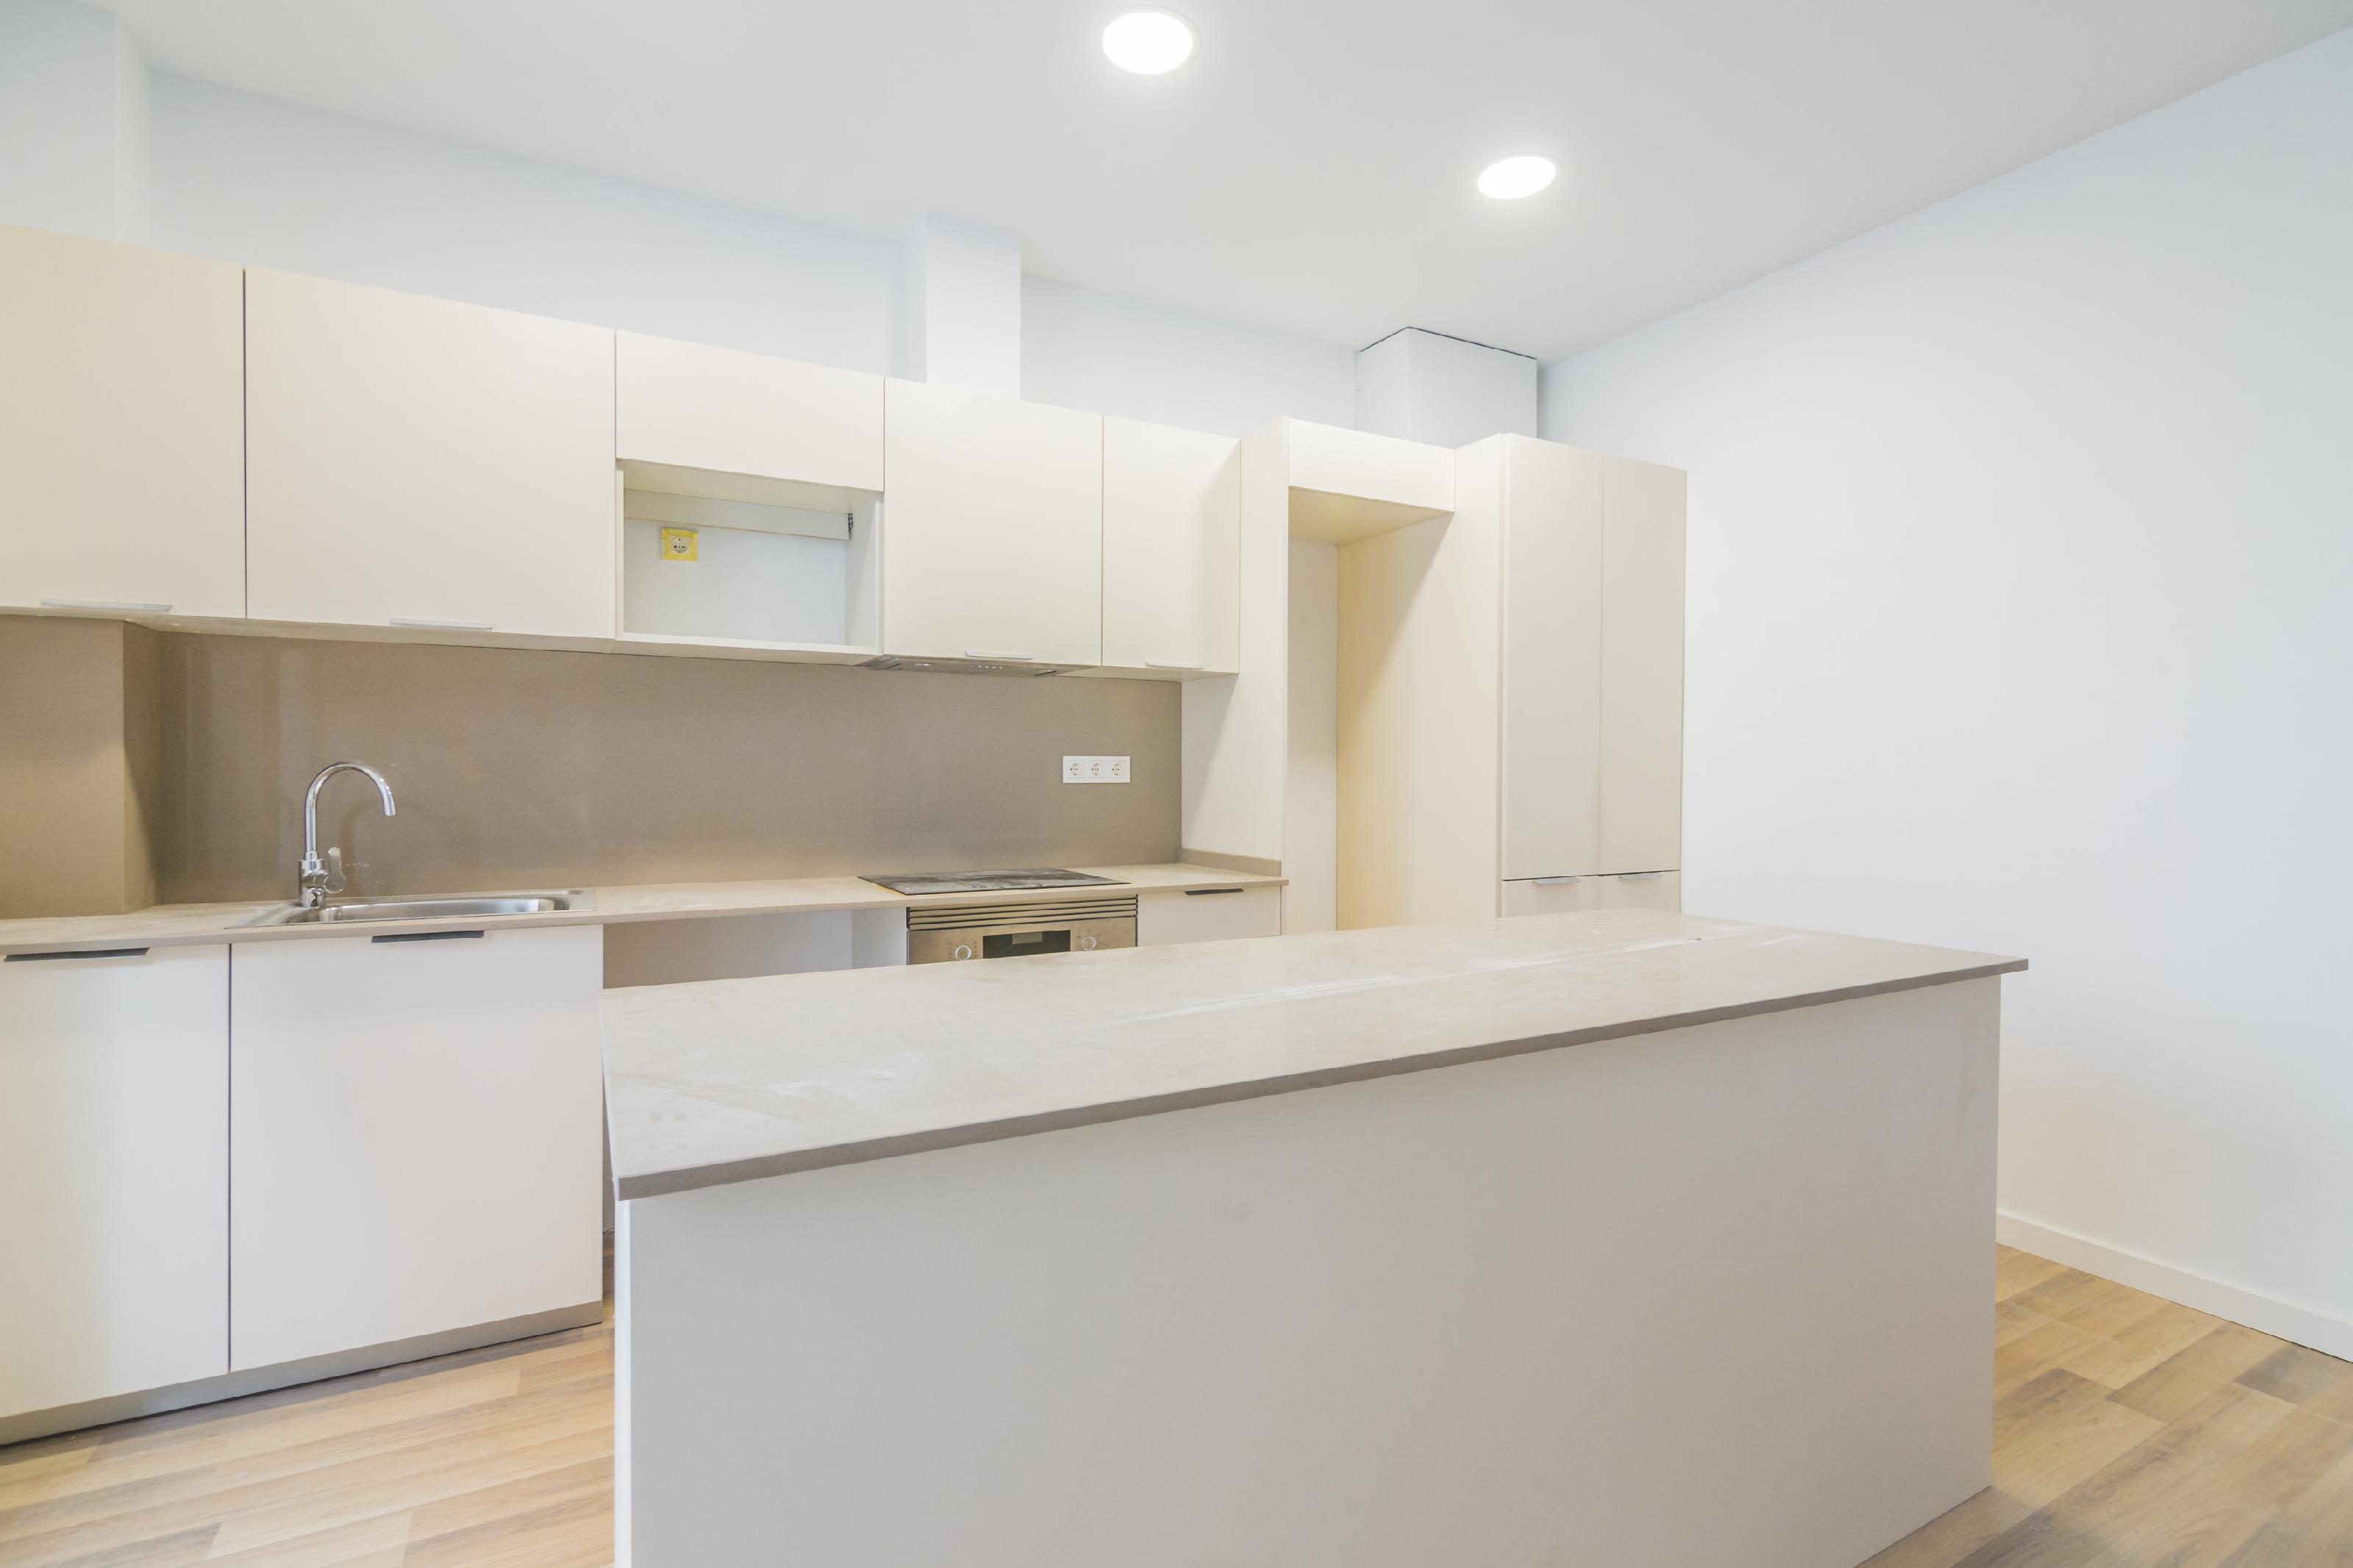 220651 Apartment for sale in Sarrià-Sant Gervasi, Sant Gervasi-Galvany 1